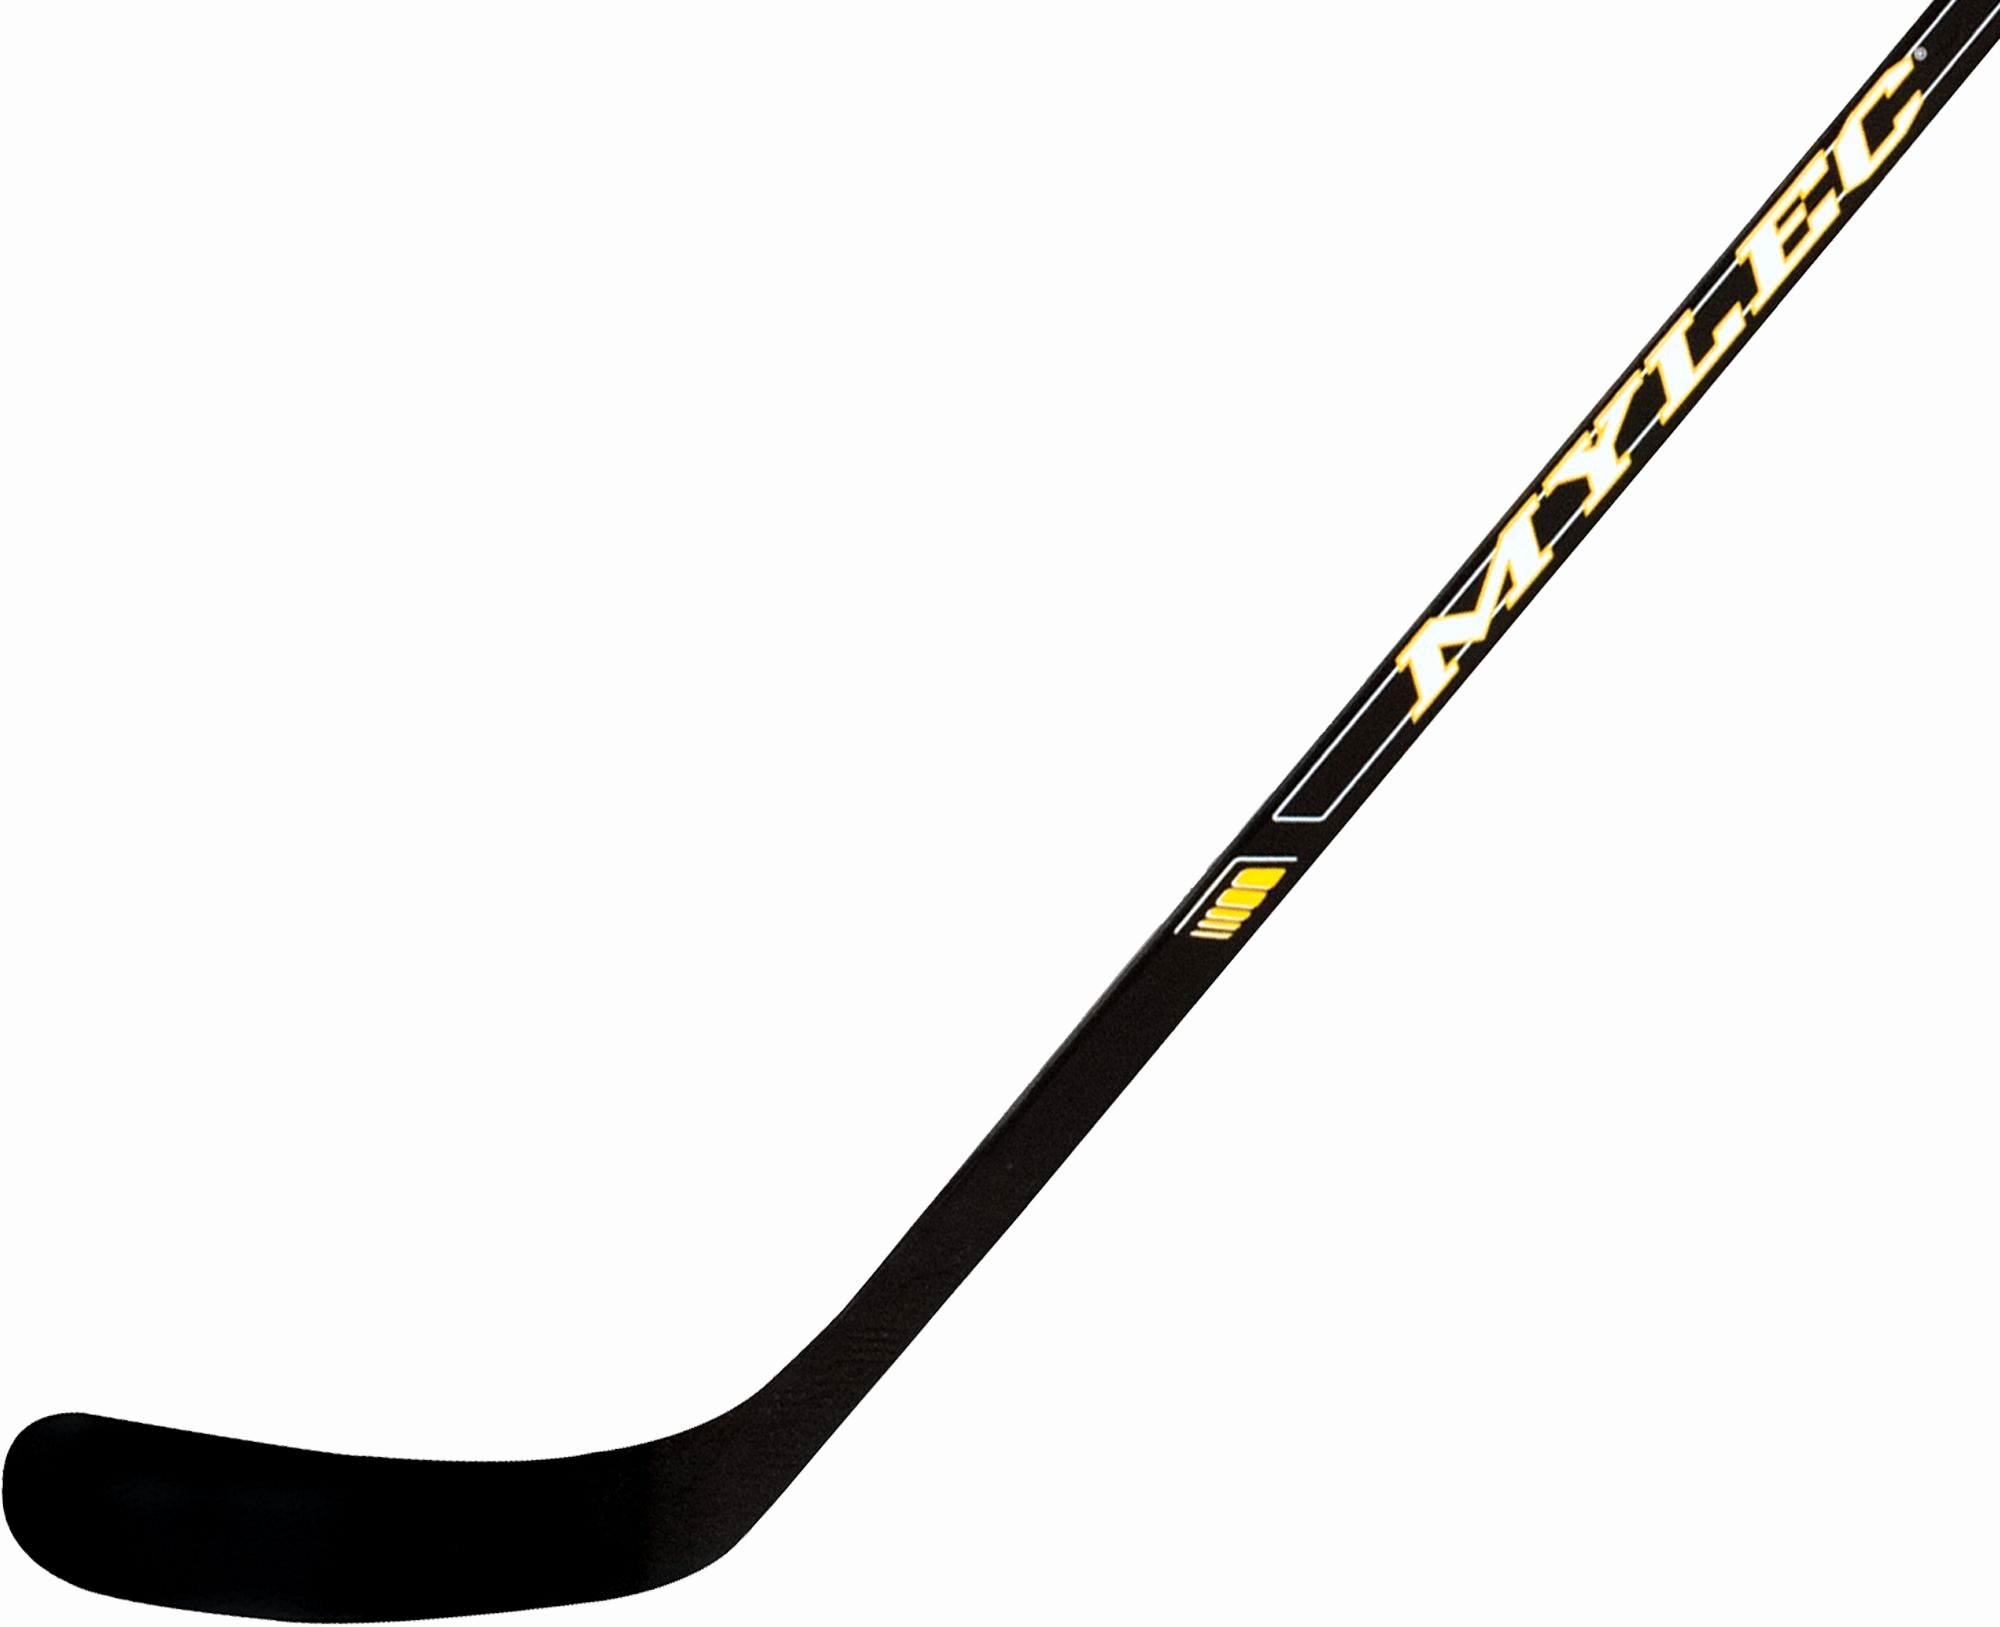 2000x1627 Hockey Stick Vector Beautiful Black Silhouette Ice Hockey Stick